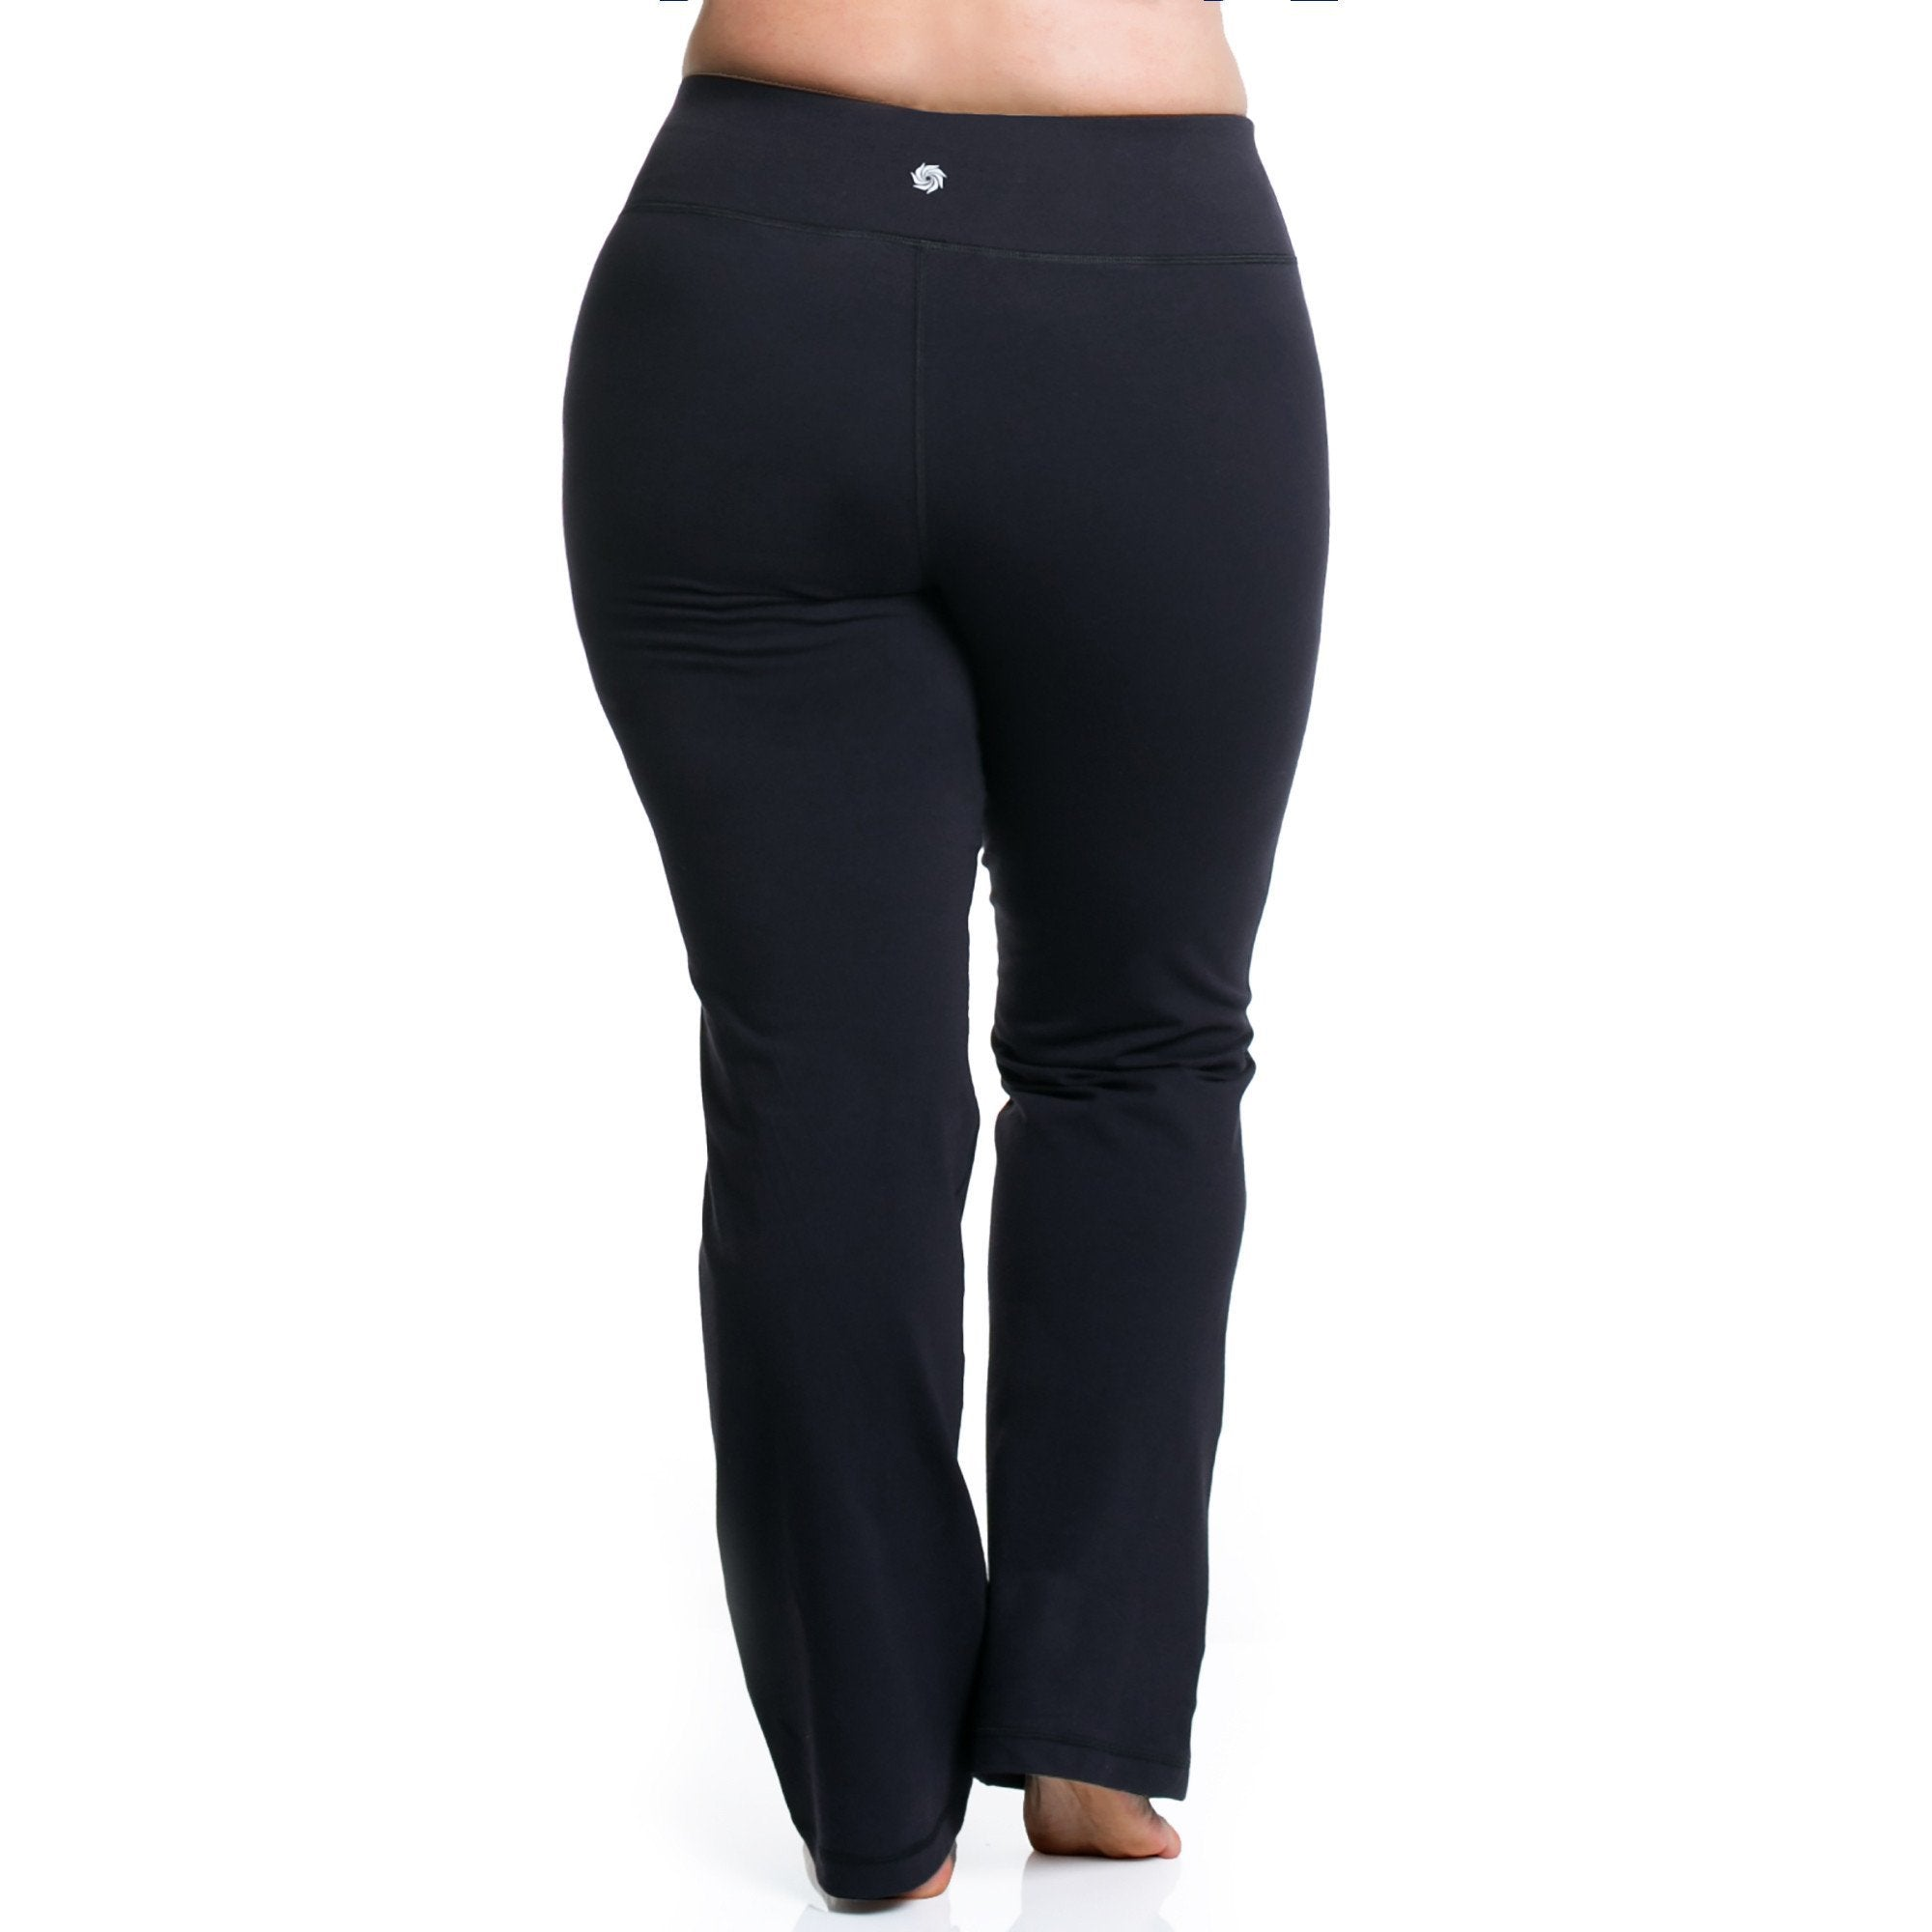 43b9acd1b7e Ladies plus size yoga pants. Plus Size Workout Clothes and ...